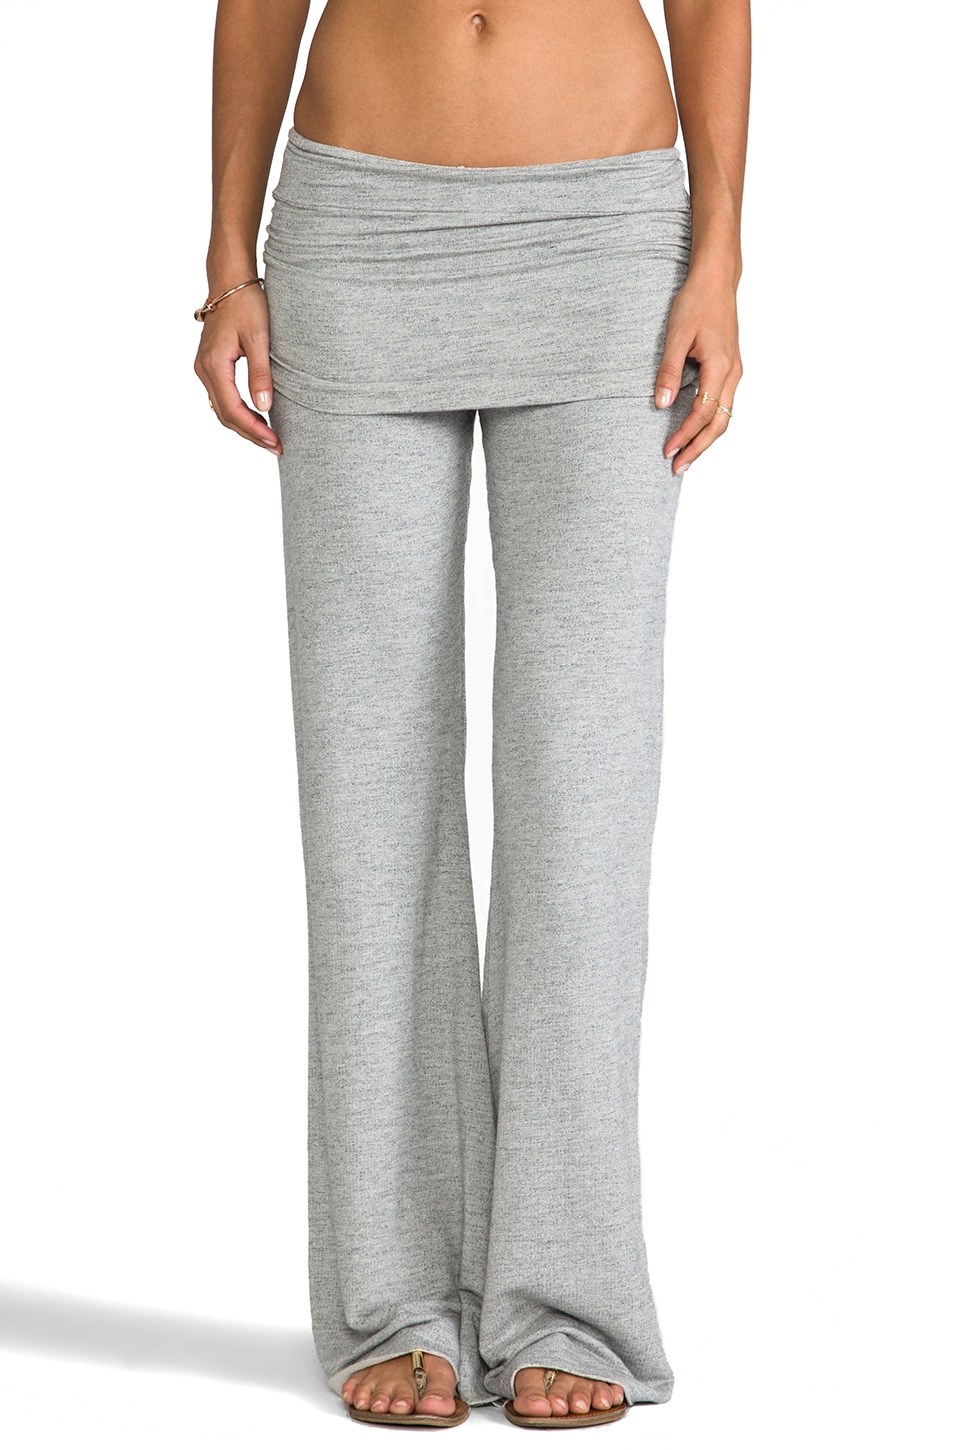 Michael Lauren Costa Bell Pant w/ Fold Over Waistband in Heather Grey